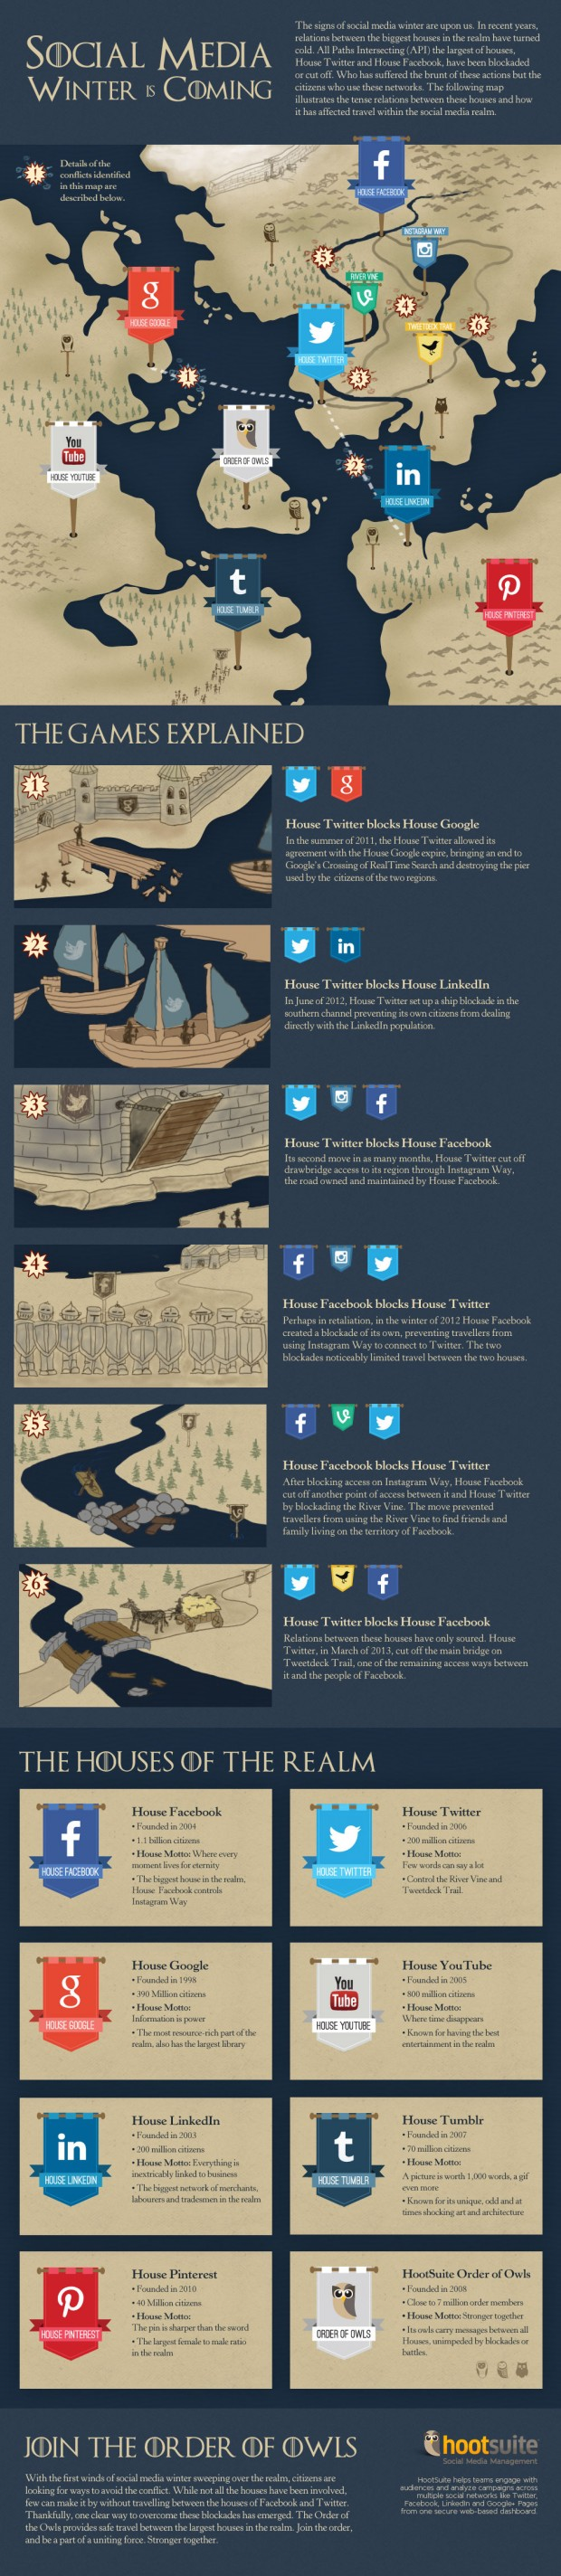 Last year's Social Media Winter is Coming infographic. Click for full size.